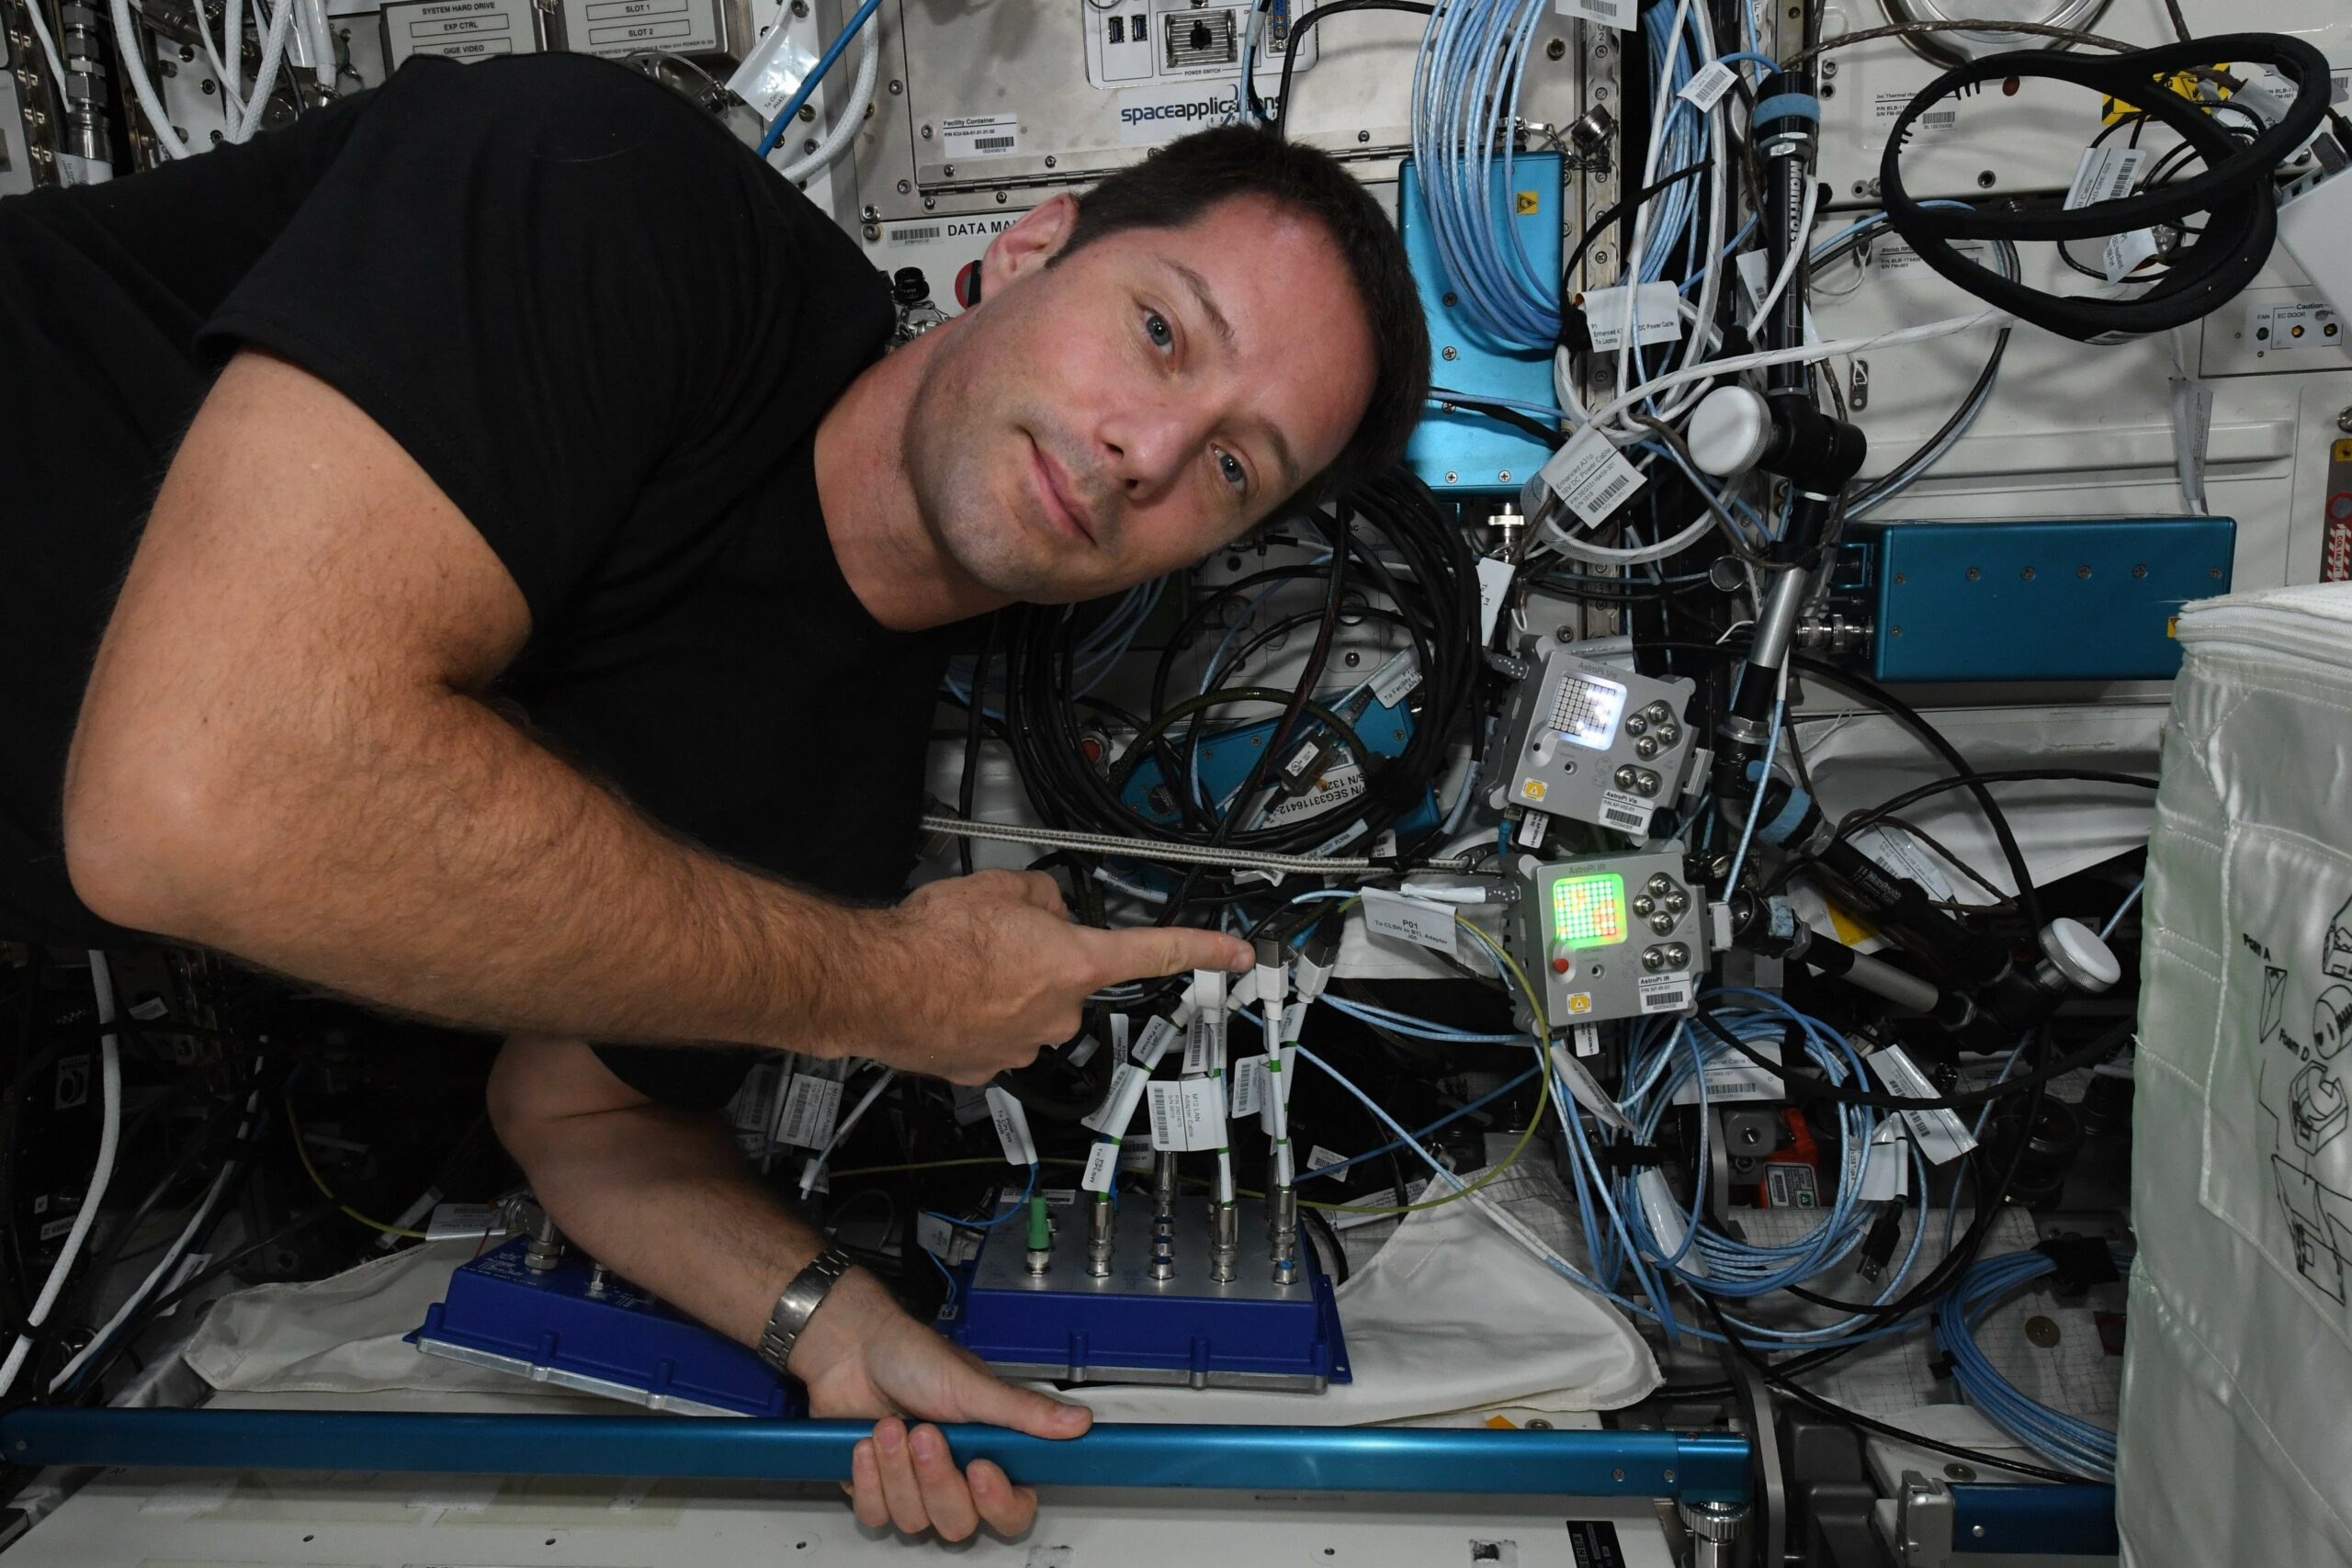 ESA Astronaut Thomas Pesquet with the Astro Pi computers aboard the International Space Station